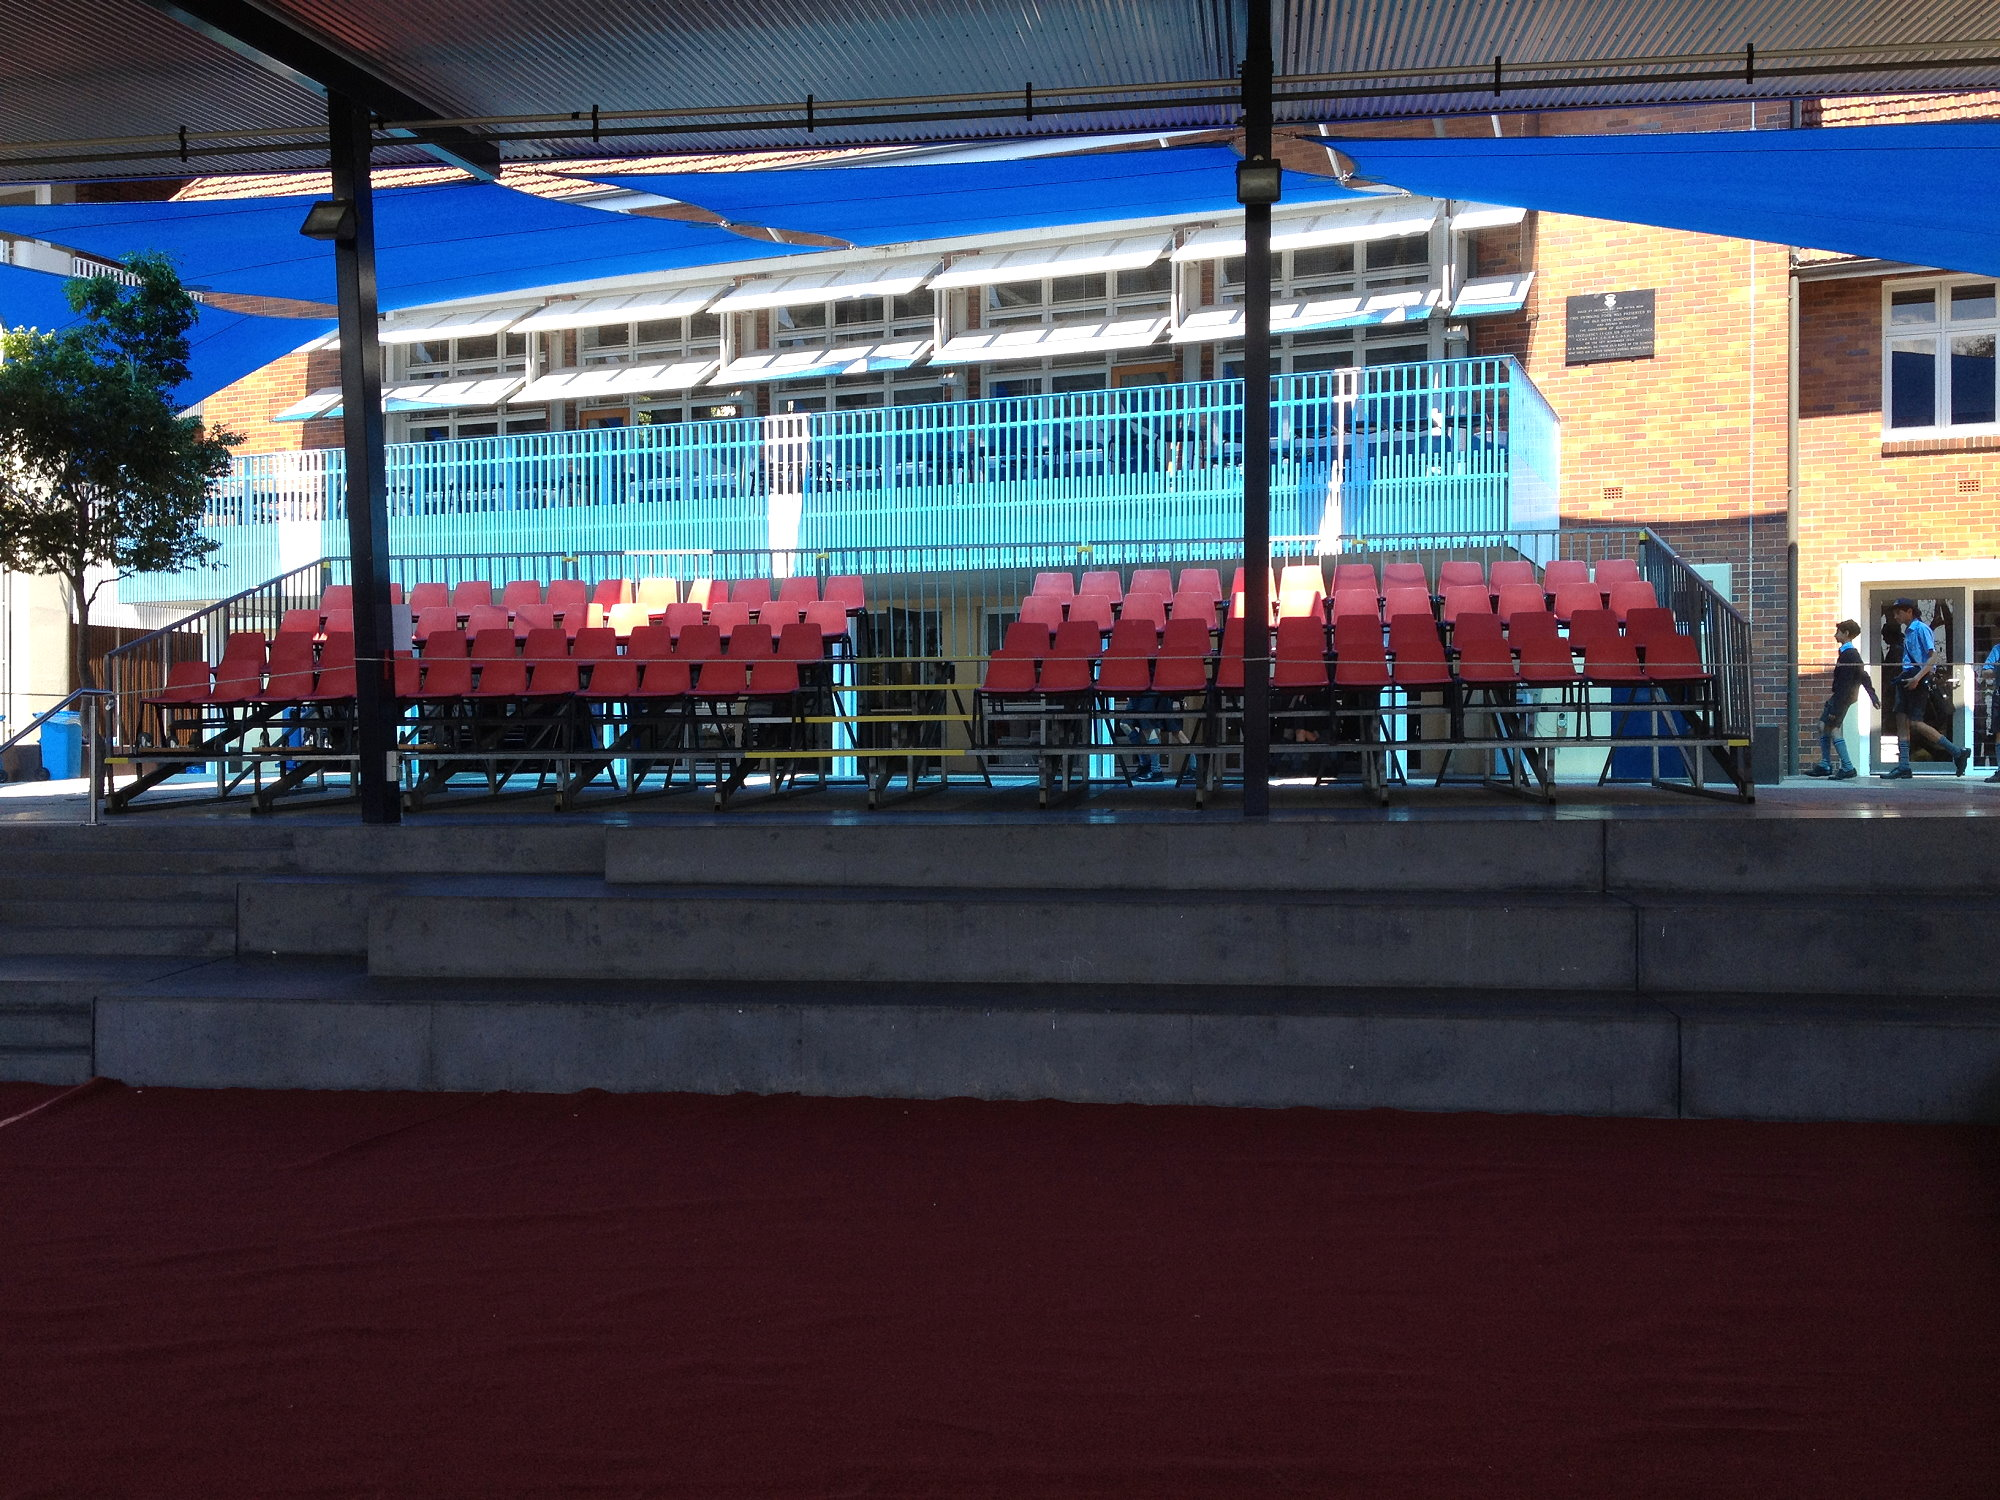 Seating Stand